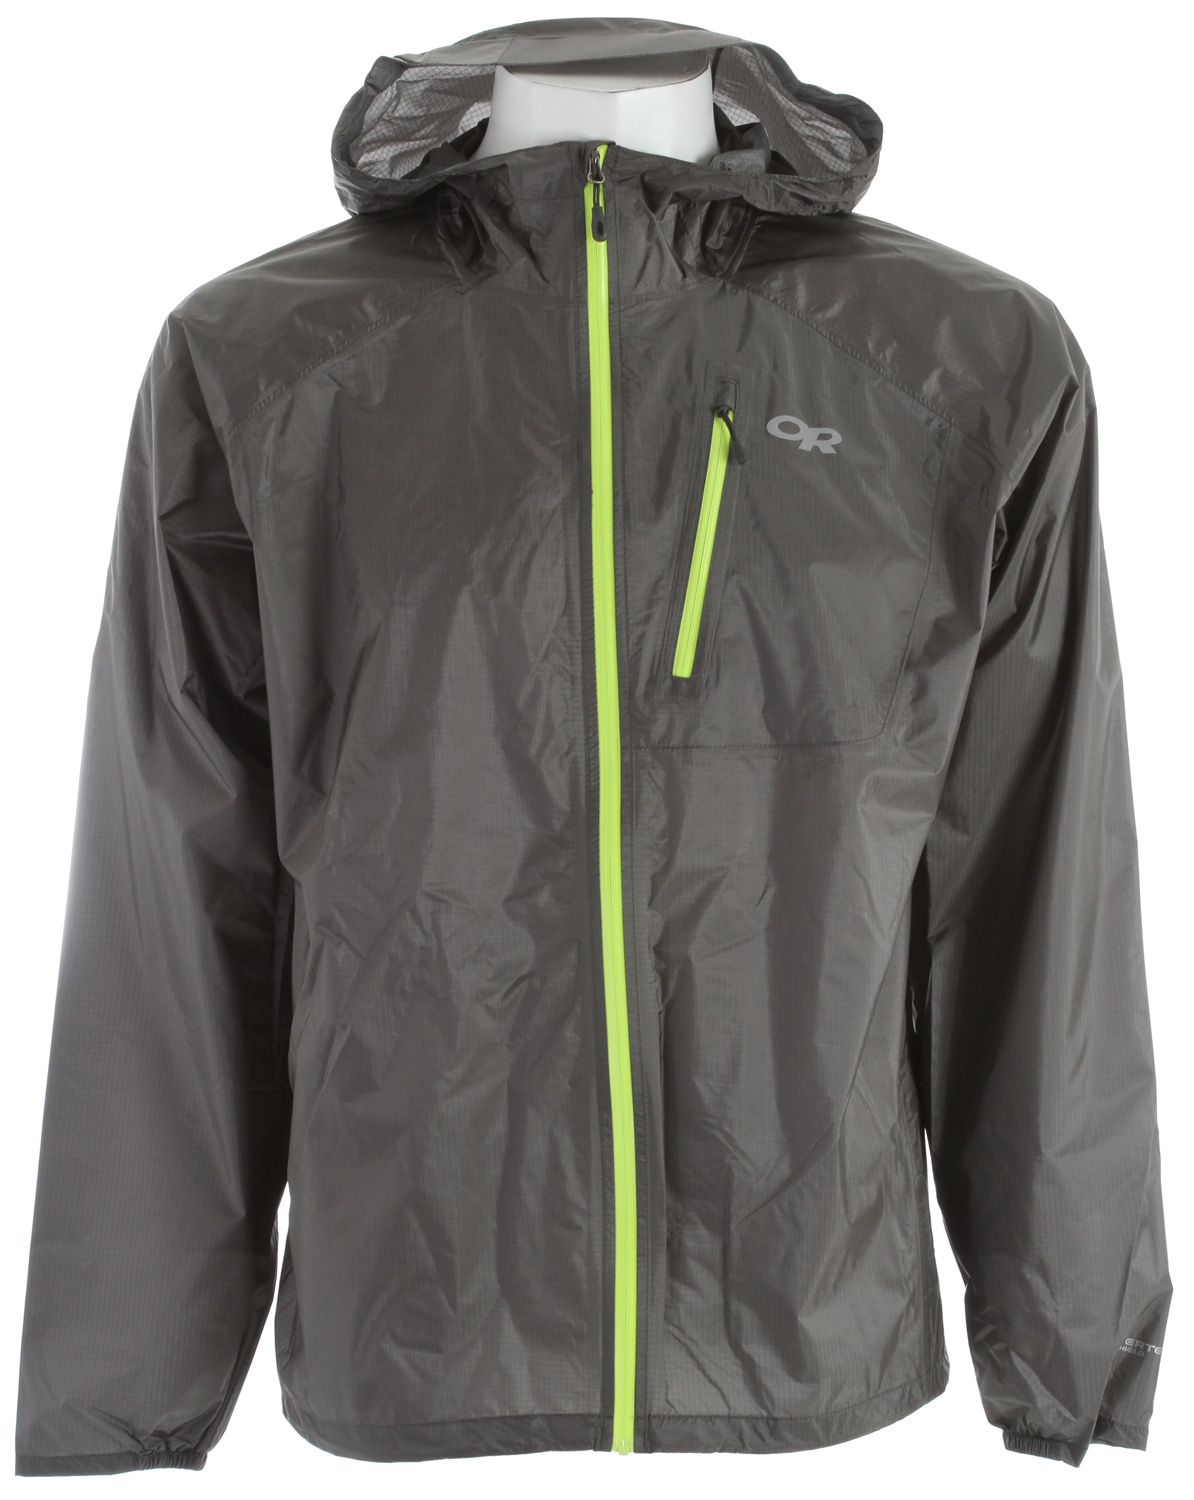 "For flash-storm protection, the new Helium II is 6% lighter and 10% more breathable than the original. An ultra-compressible piece you'll never leave behind, the new Helium II offers 30% more waterproof protection from mid-route downpoursKey Features of the Outdoor Research Helium II Jacket: 100% Nylon, 2.5 layer 30D Pertex® Shield DS ripstop fabric w/ clear laminate Ultralight Waterproof/Breathable Fully seam taped Adjustable hood Water-resistant zippers 7.5""internal stormflap Zippered chest pocket Stuff pocket with biner loop Elastic cuffs Drawcord hem - $104.95"